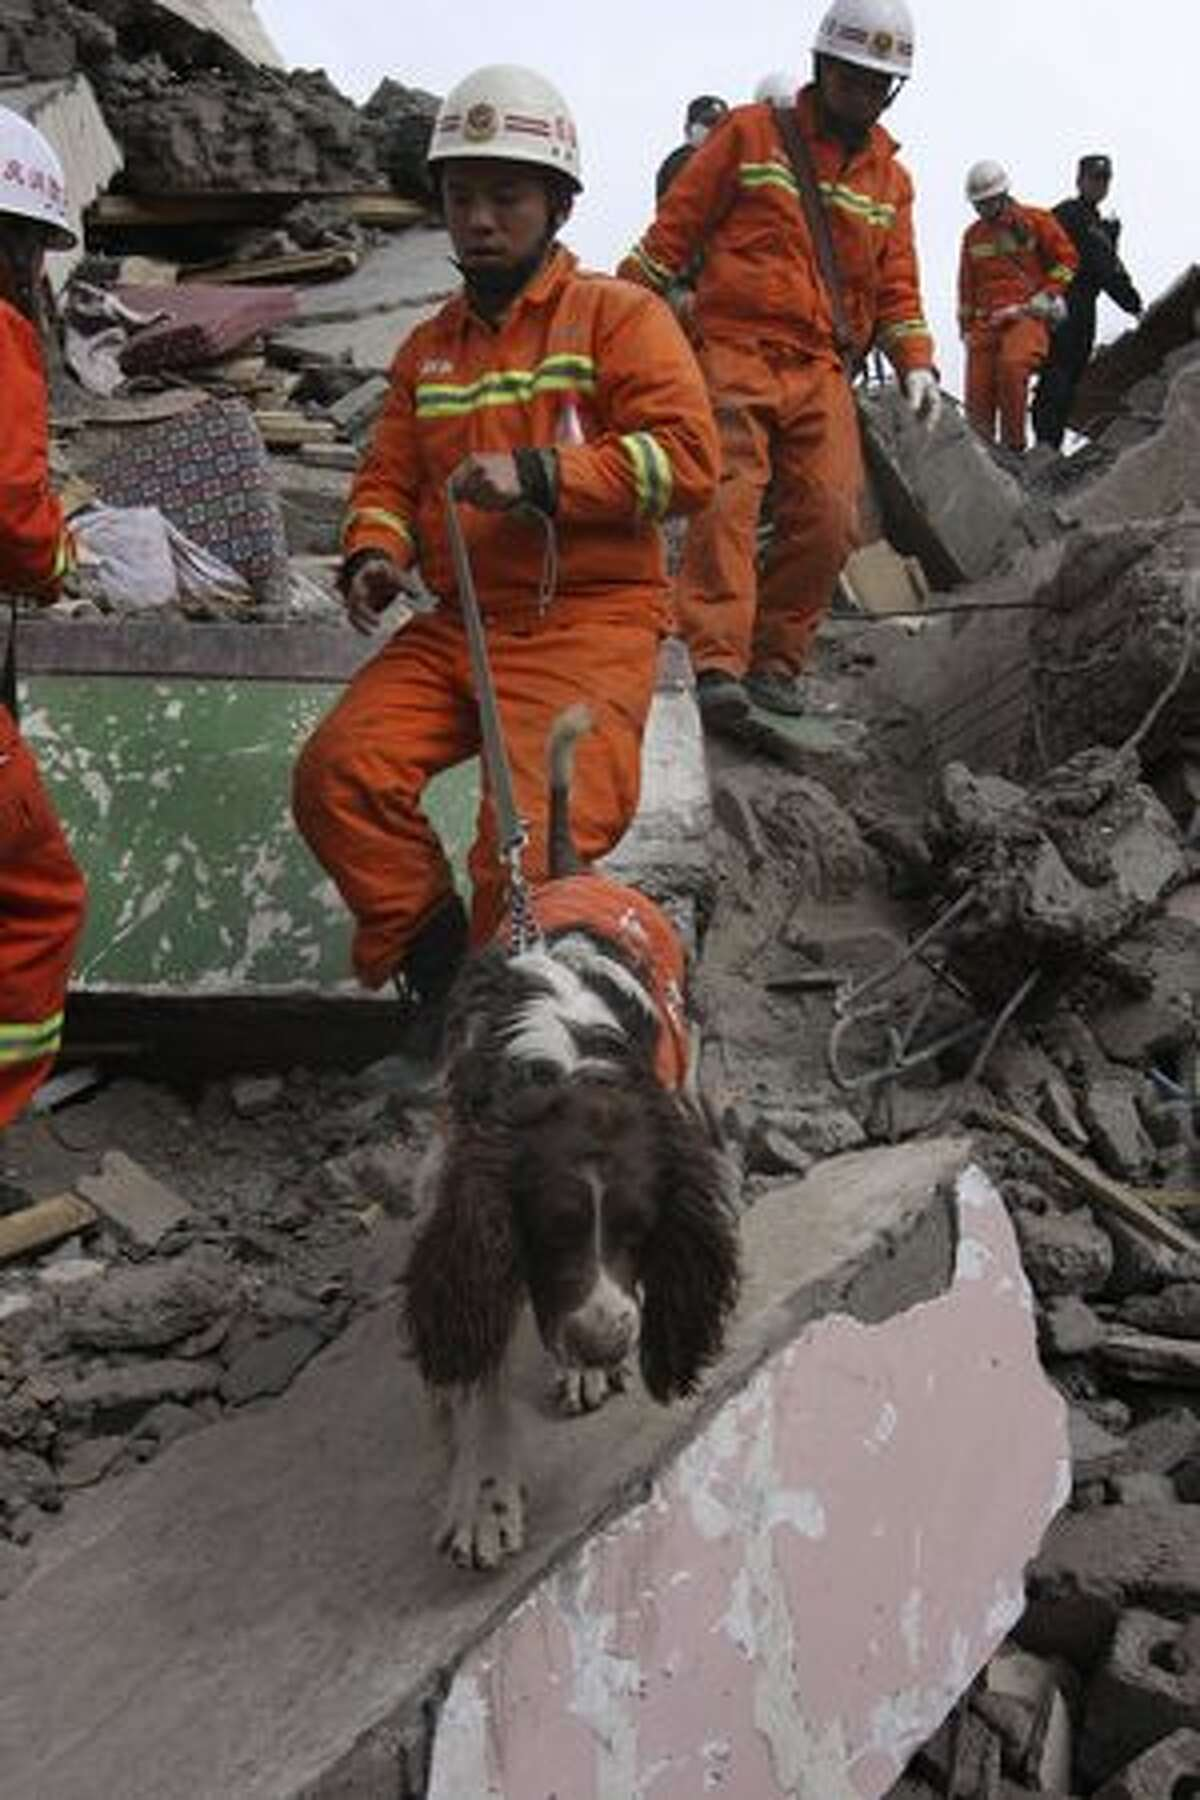 A dog leads a rescue worker searching for survivors in a pile of rubble in quake-hit Jiegu town in Yushu county in northwest China's Qinghai province, Friday, April 16, 2010. Rescuers probed the rubble for sounds or movement Friday in a rush to find anyone buried alive more than 48 hours after an earthquake hit western China, killing at least 760 people. (AP Photo)